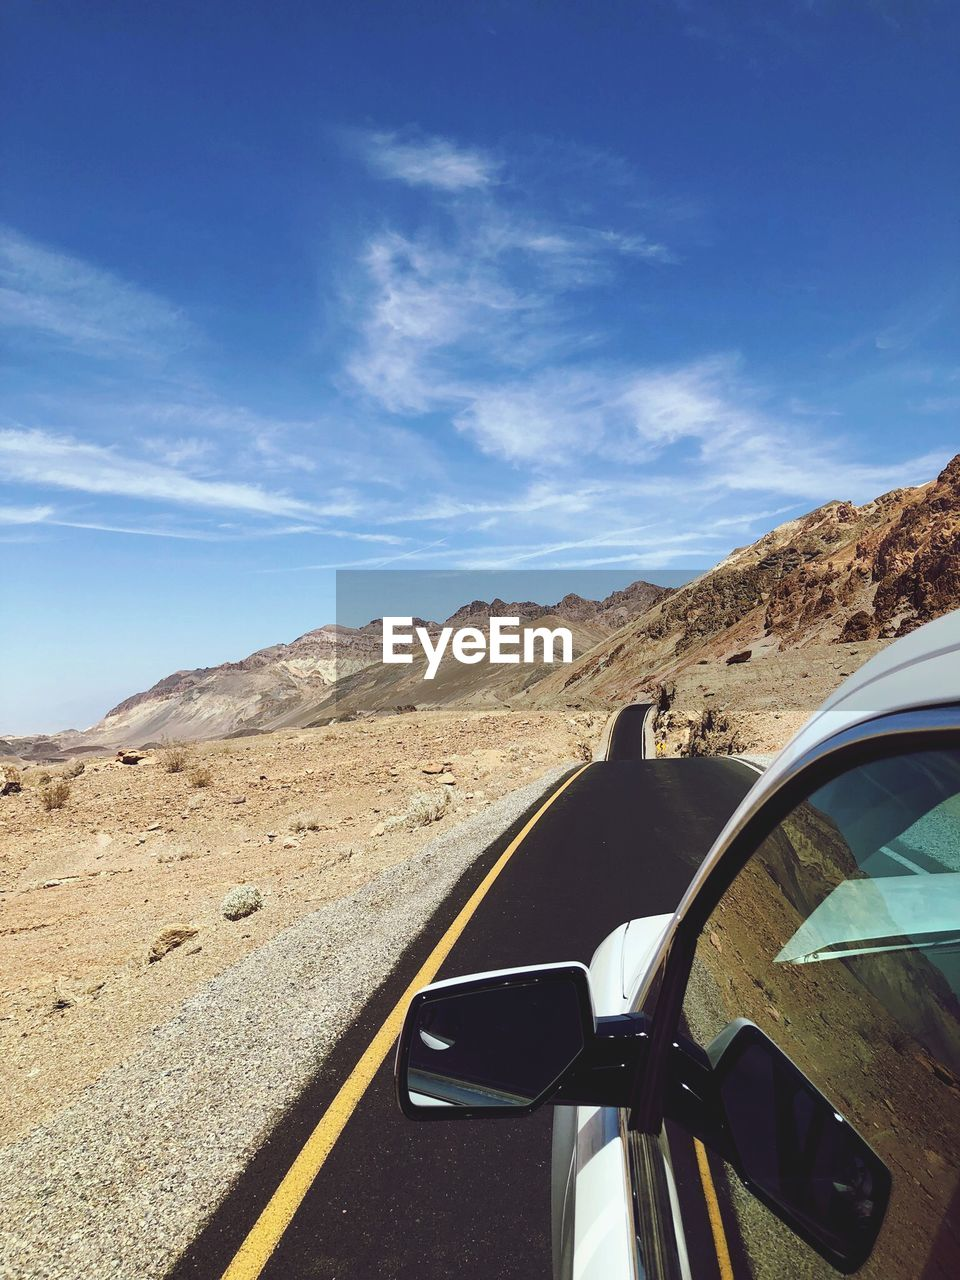 Car on road against mountains and sky